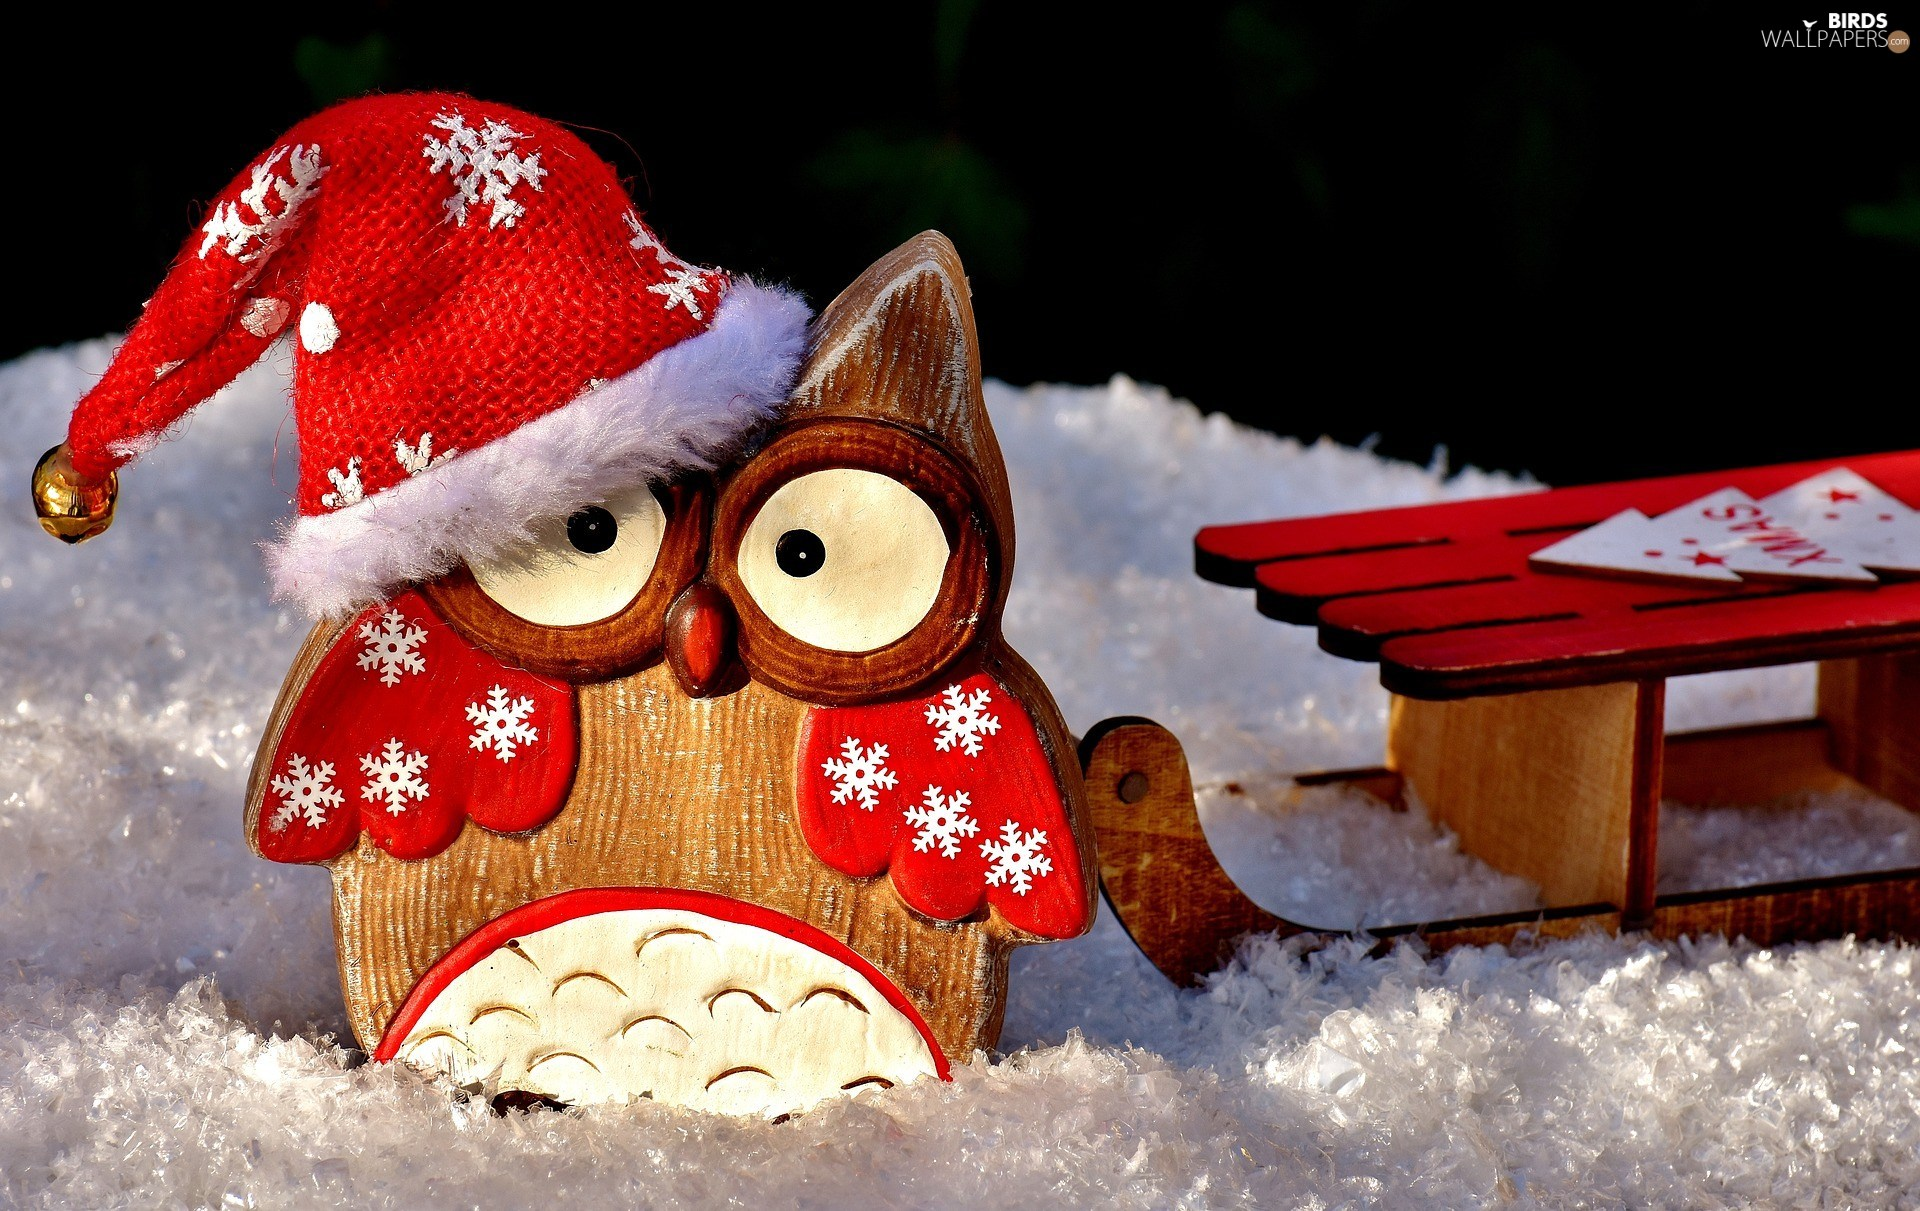 snow, Nicholas, Hat, decoration, sledge, Wooden, owl